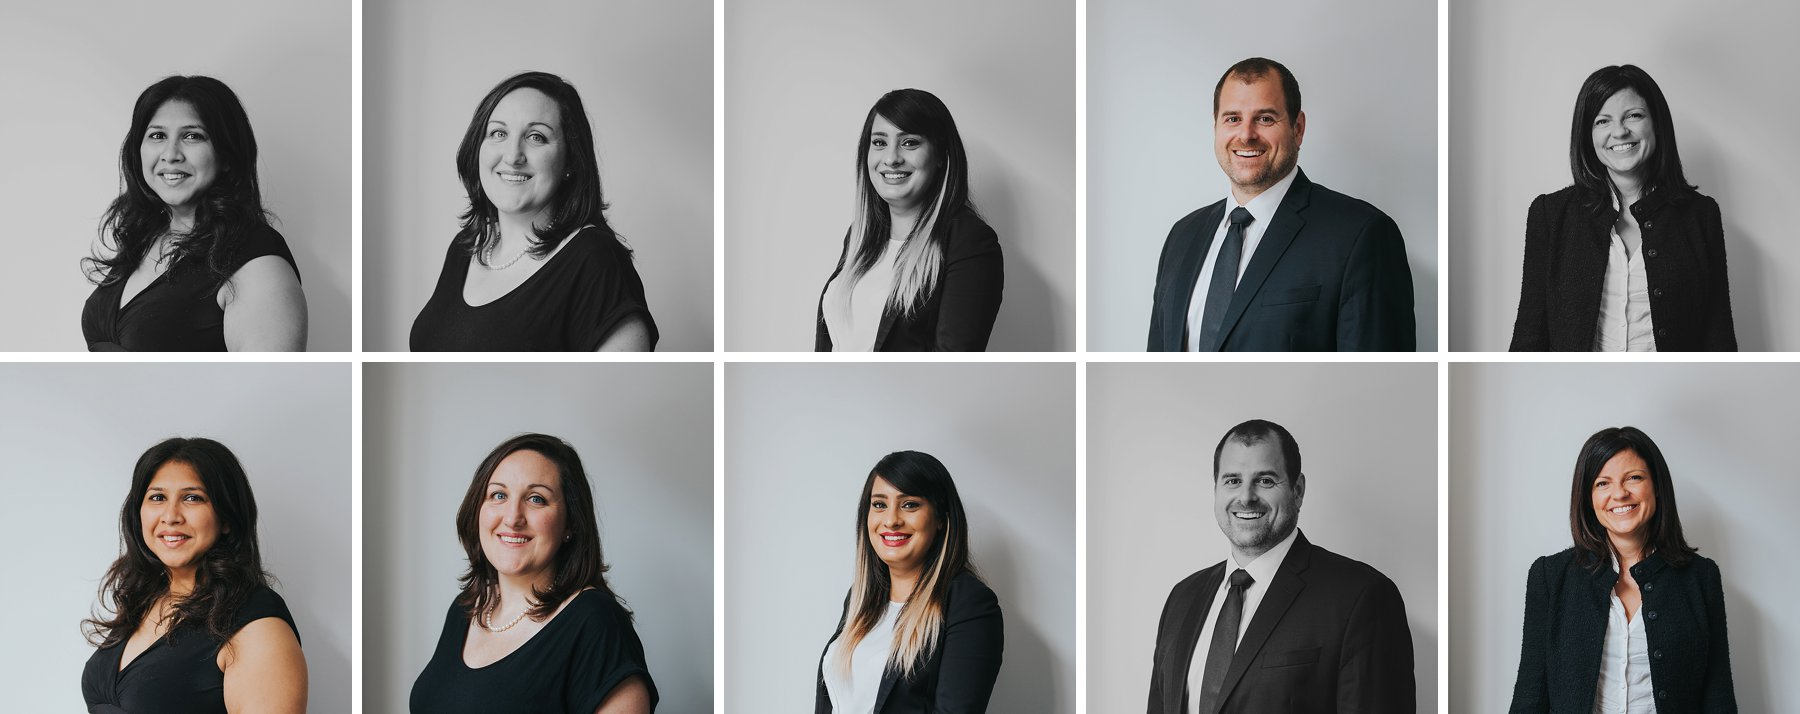 Not so corporate headshots for London lawyers Yolande De Vries Photography.jpg